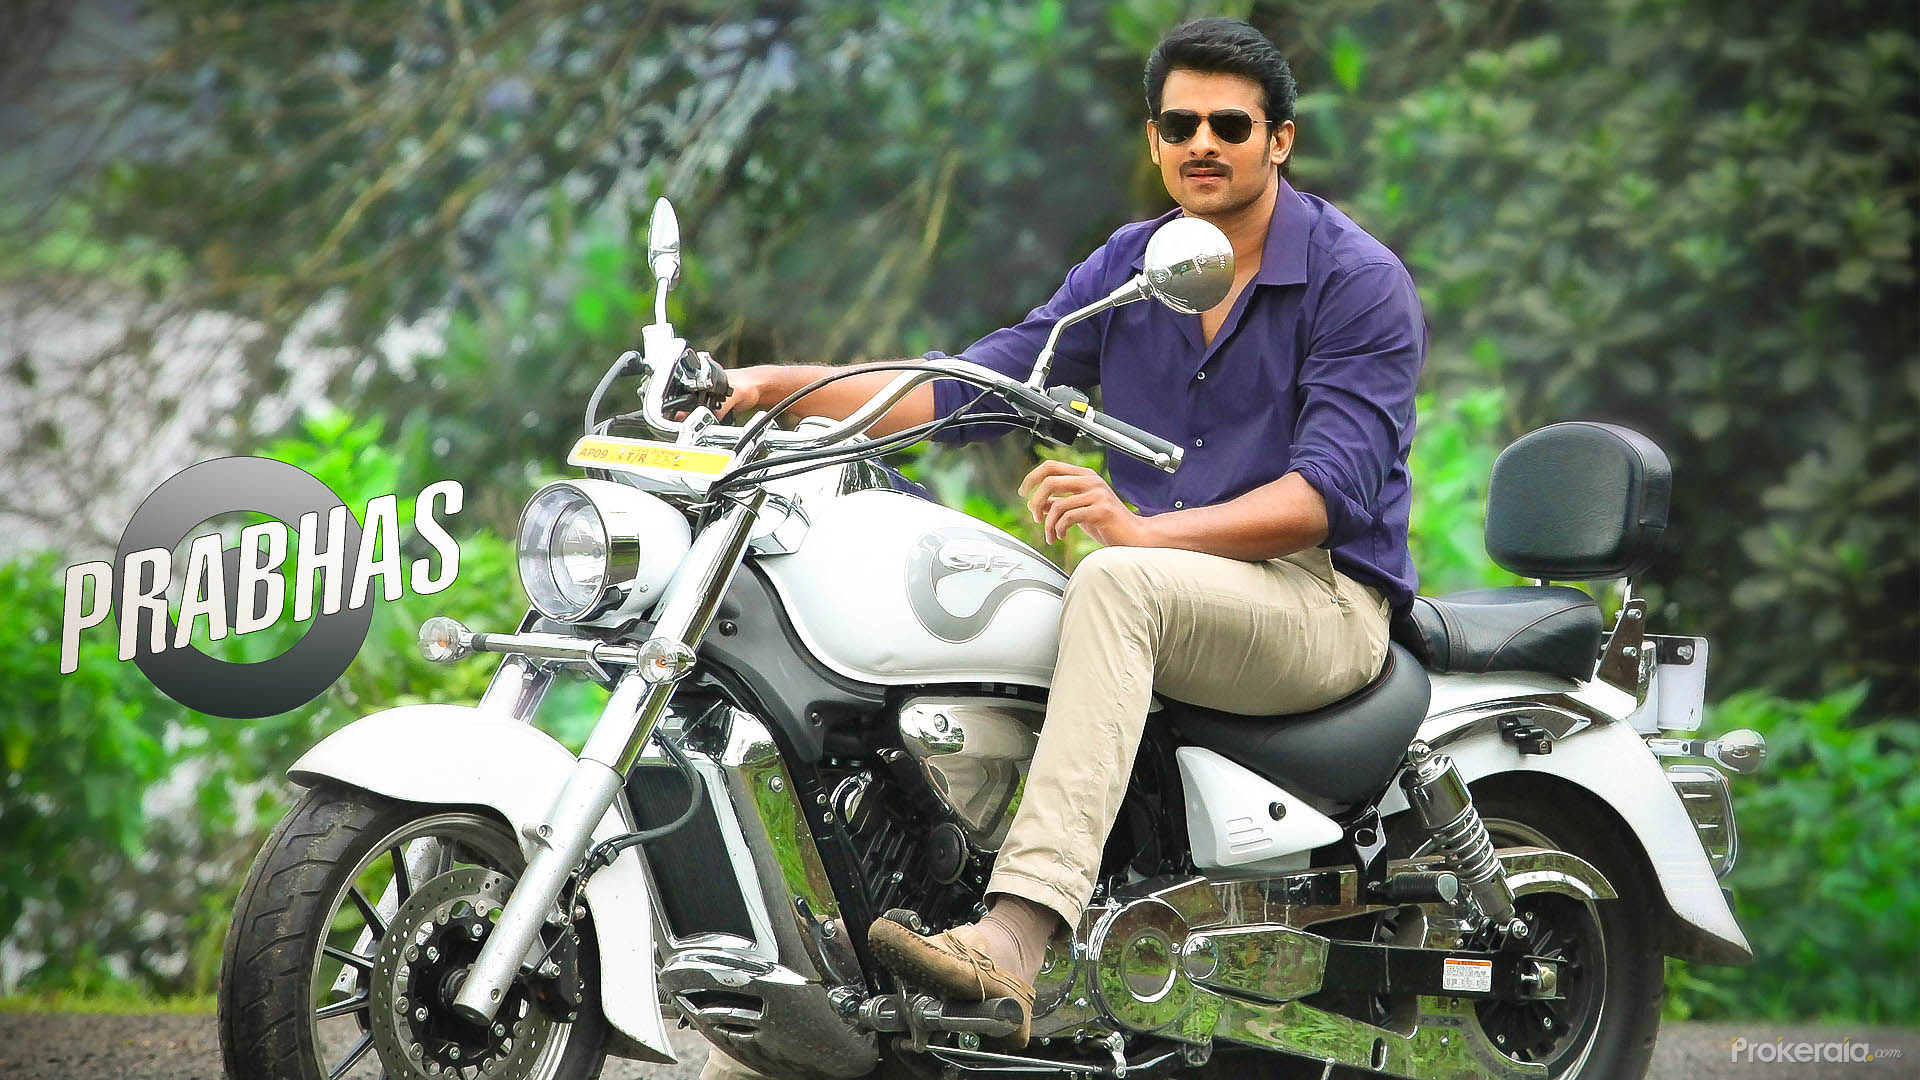 Prabhas Wallpapers Free Download Mobile: Prabas HD Wallpaper For Mobile And Desktop